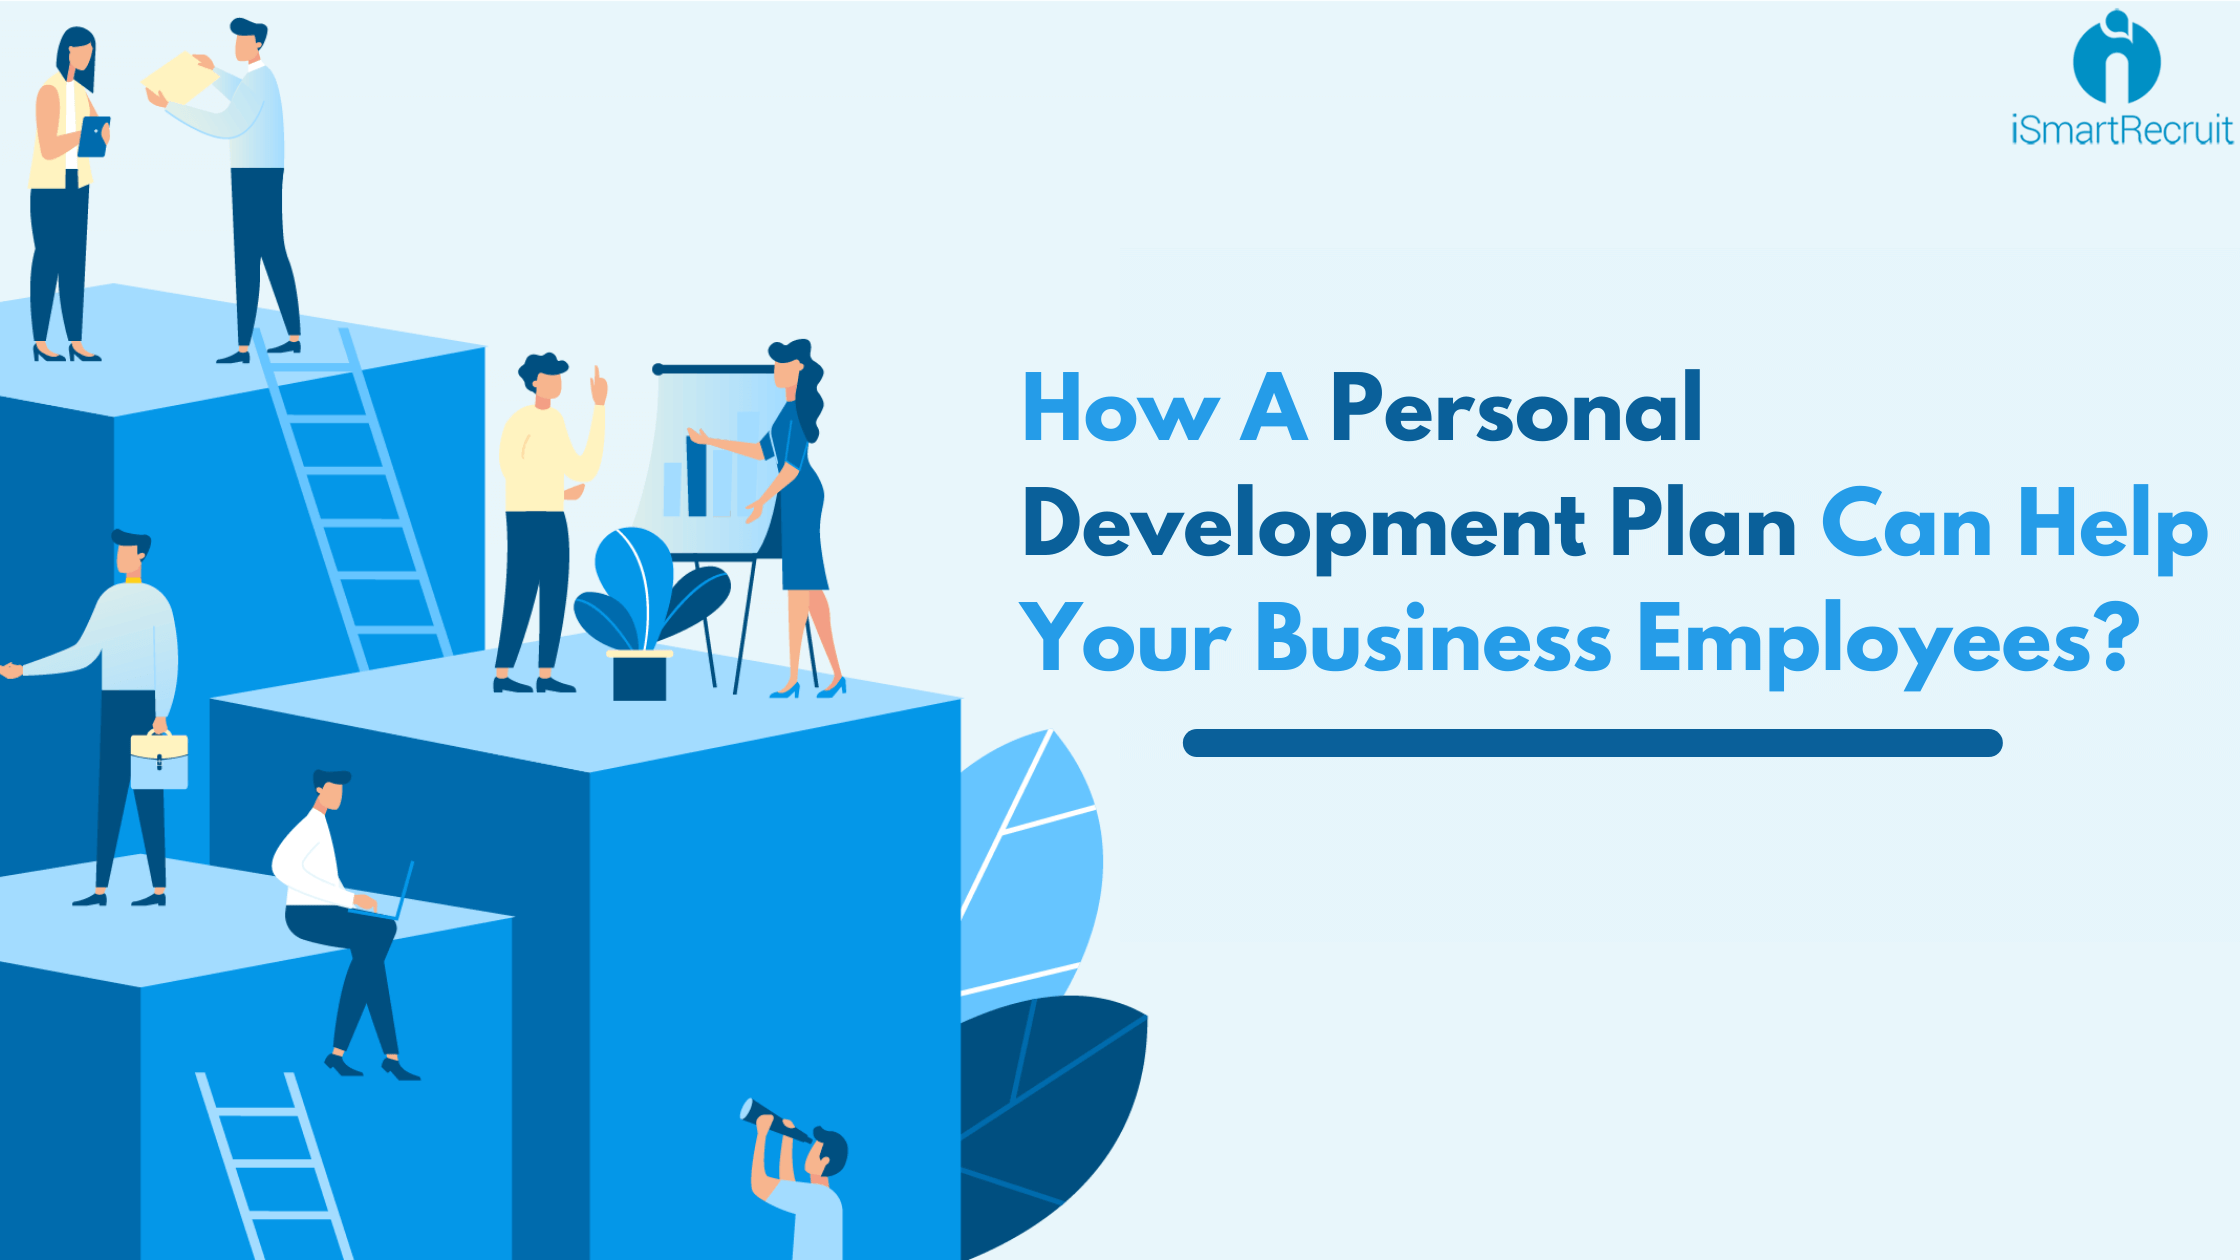 How A Personal Development Plan Can Help Your Business Employees?